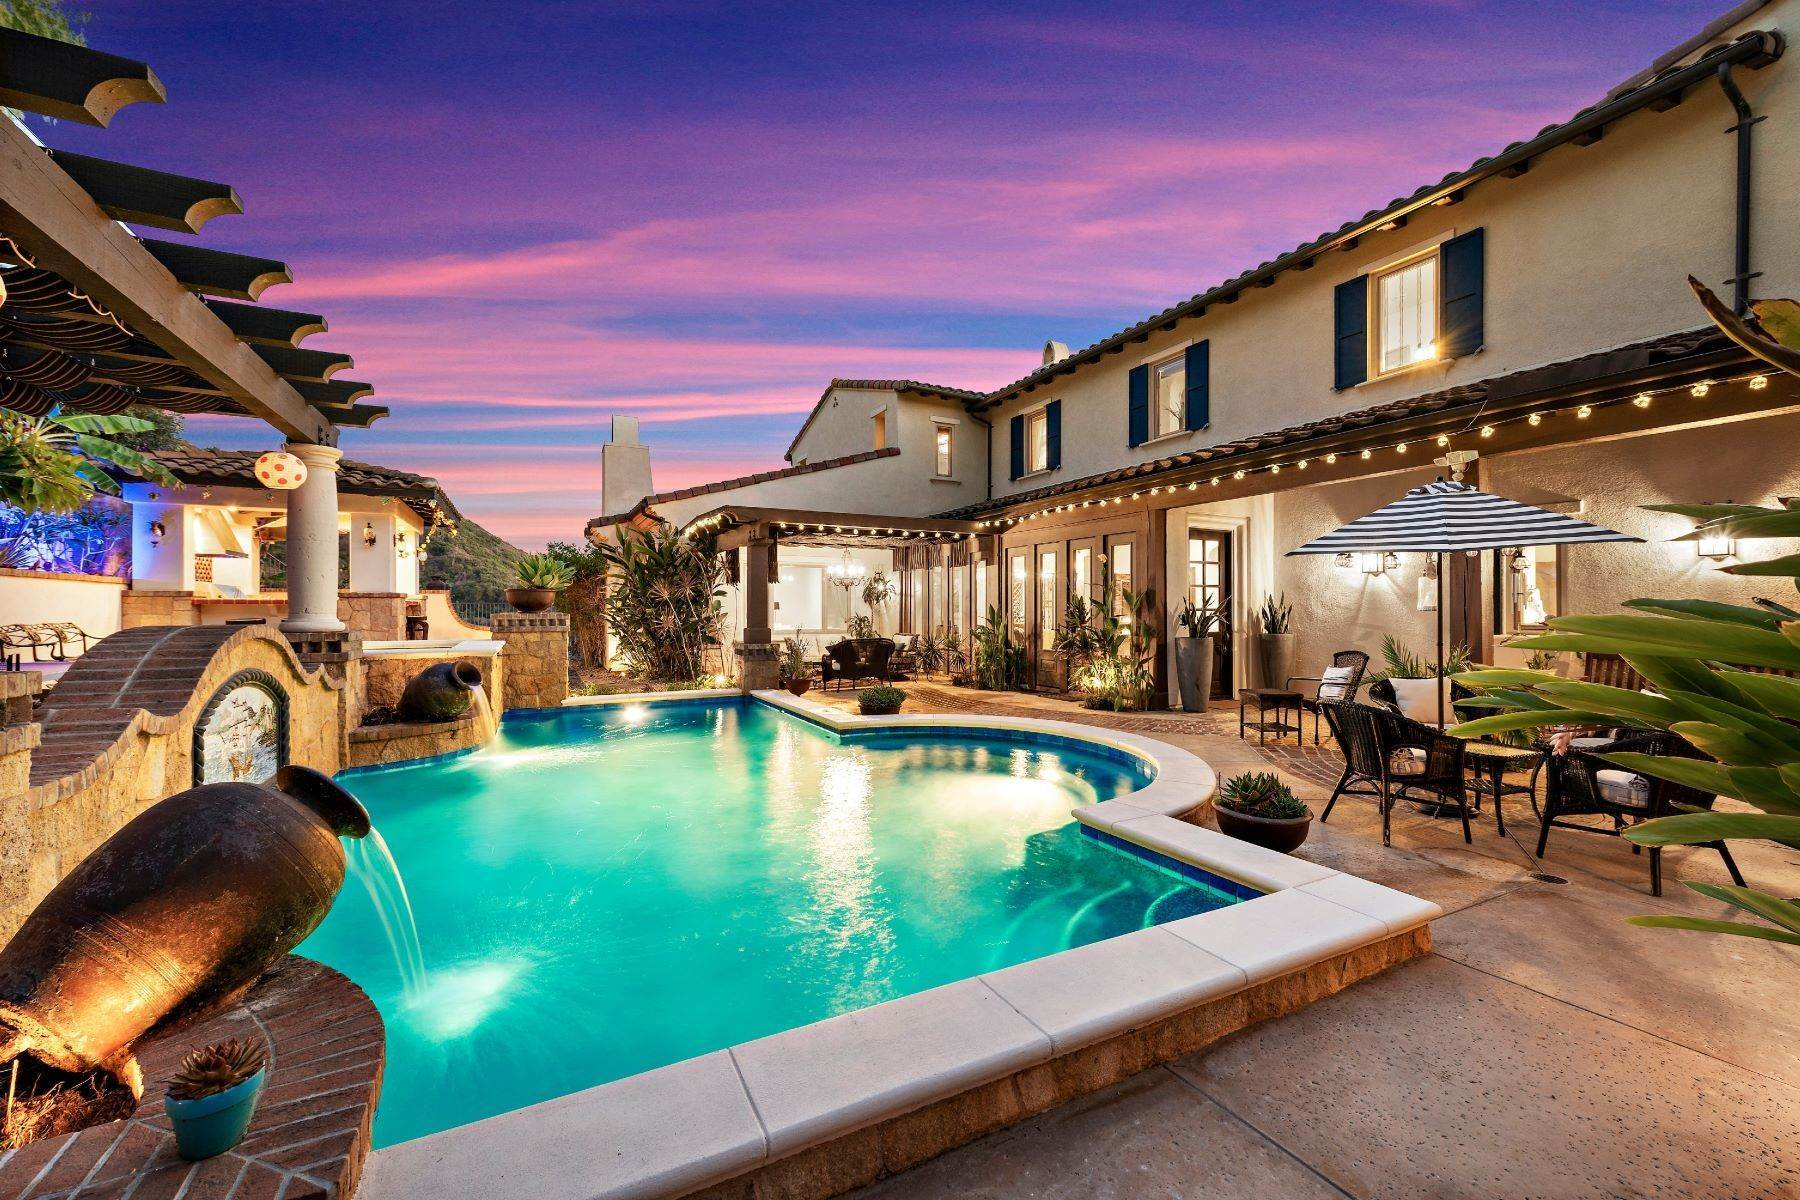 Single Family Homes for Sale at 67 Calle Careyes San Clemente, California 92673 United States